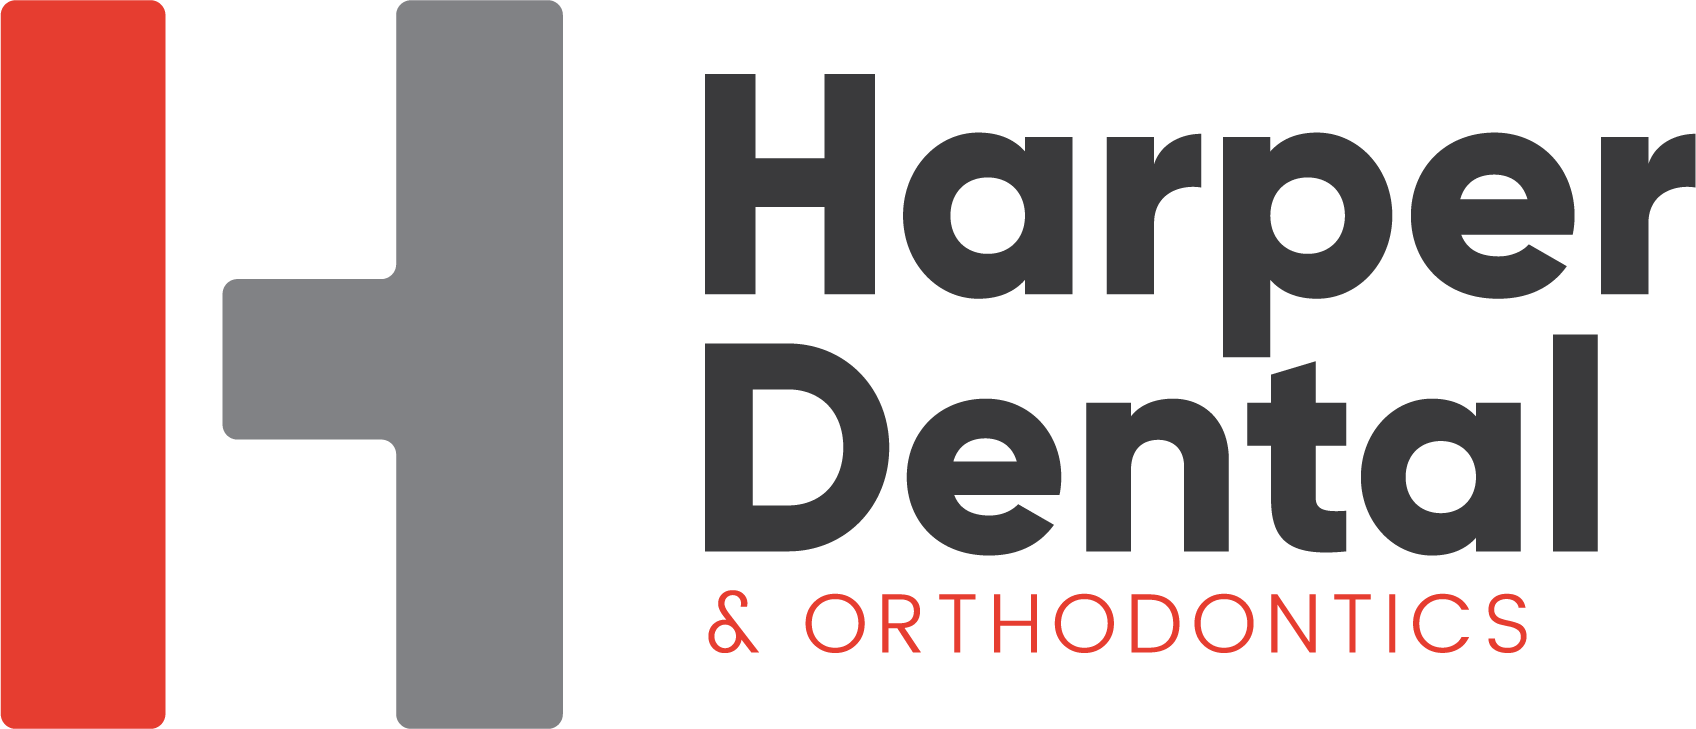 Harper Dental & Orthodontics